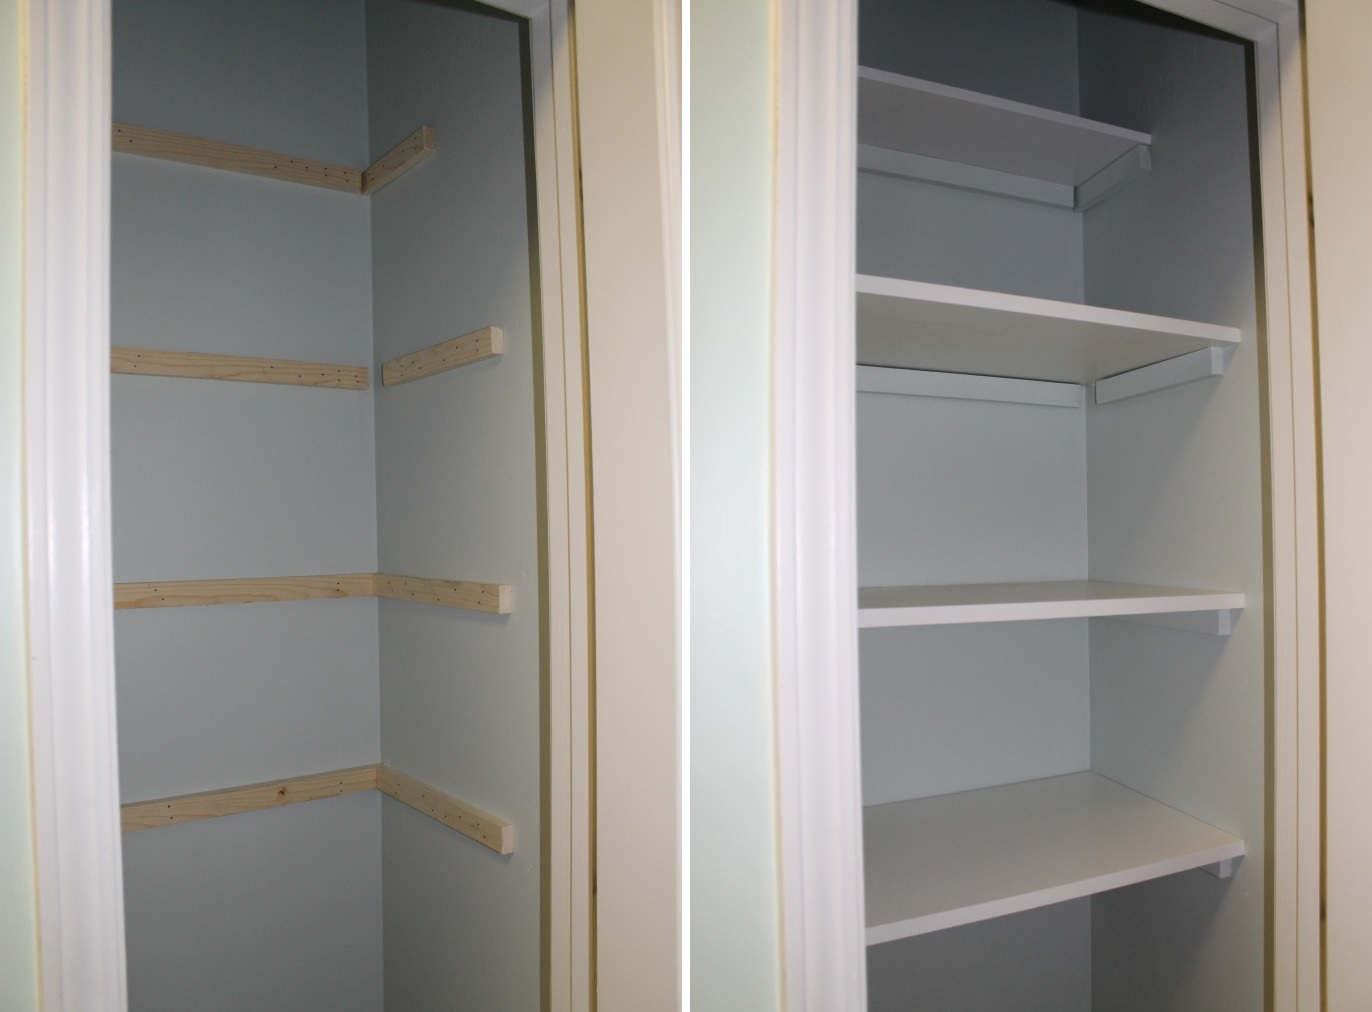 Superbe Painted White Wooden Shelves For Closet